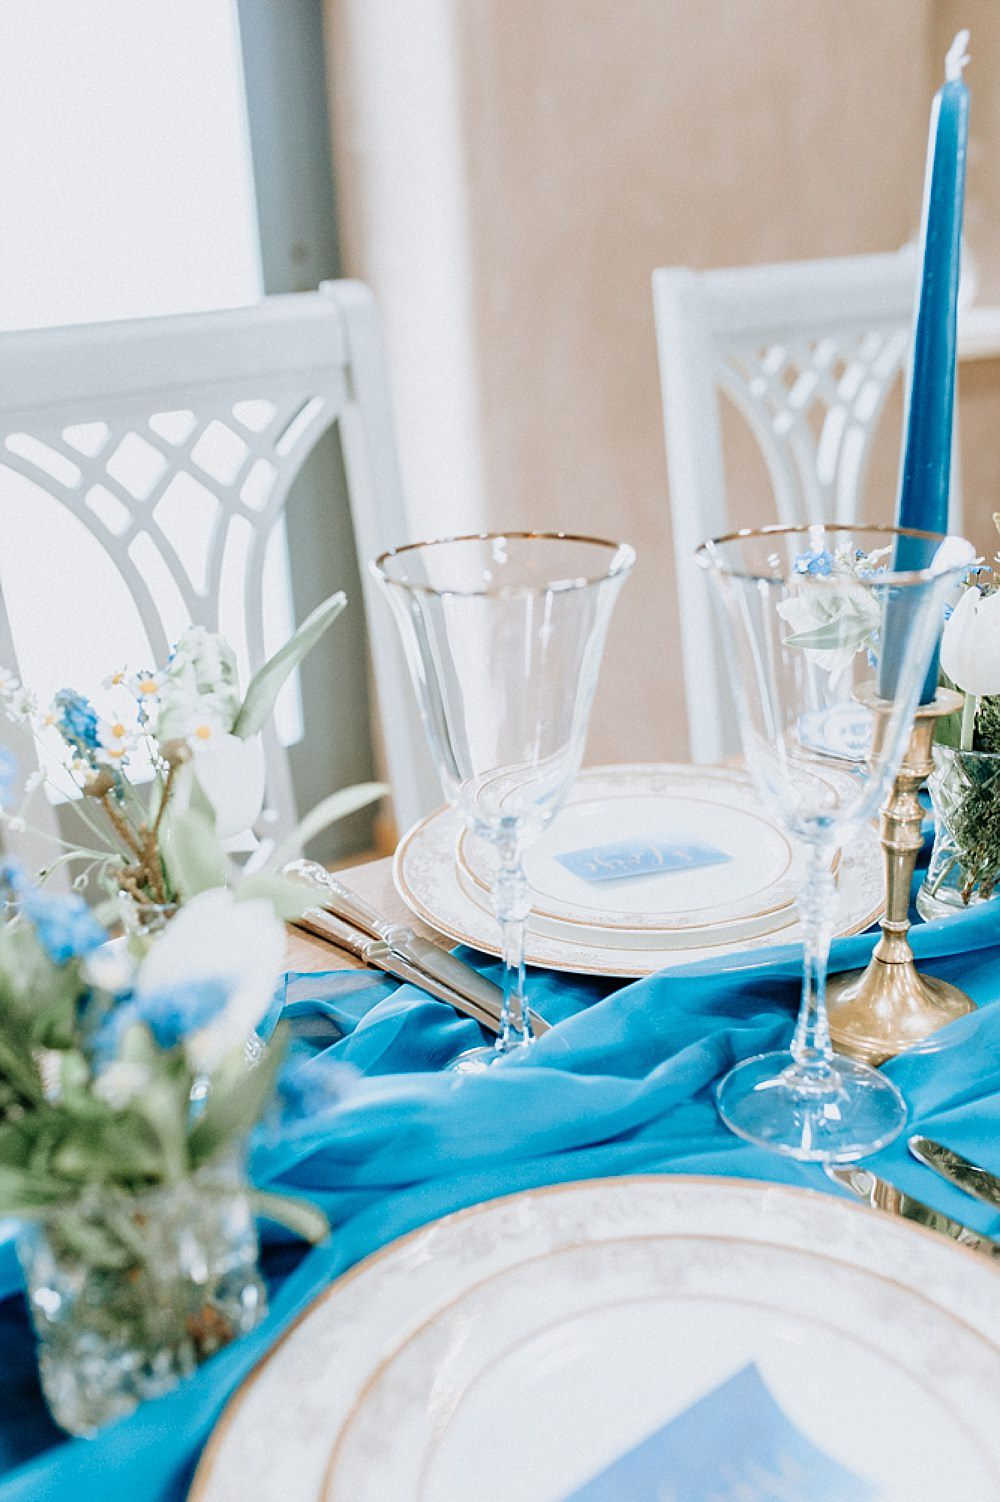 Table Tablescape Decor Decoration Runner Silk Candlesticks Flowers Blue Gold Wedding Ideas Ailsa Reeve Photography